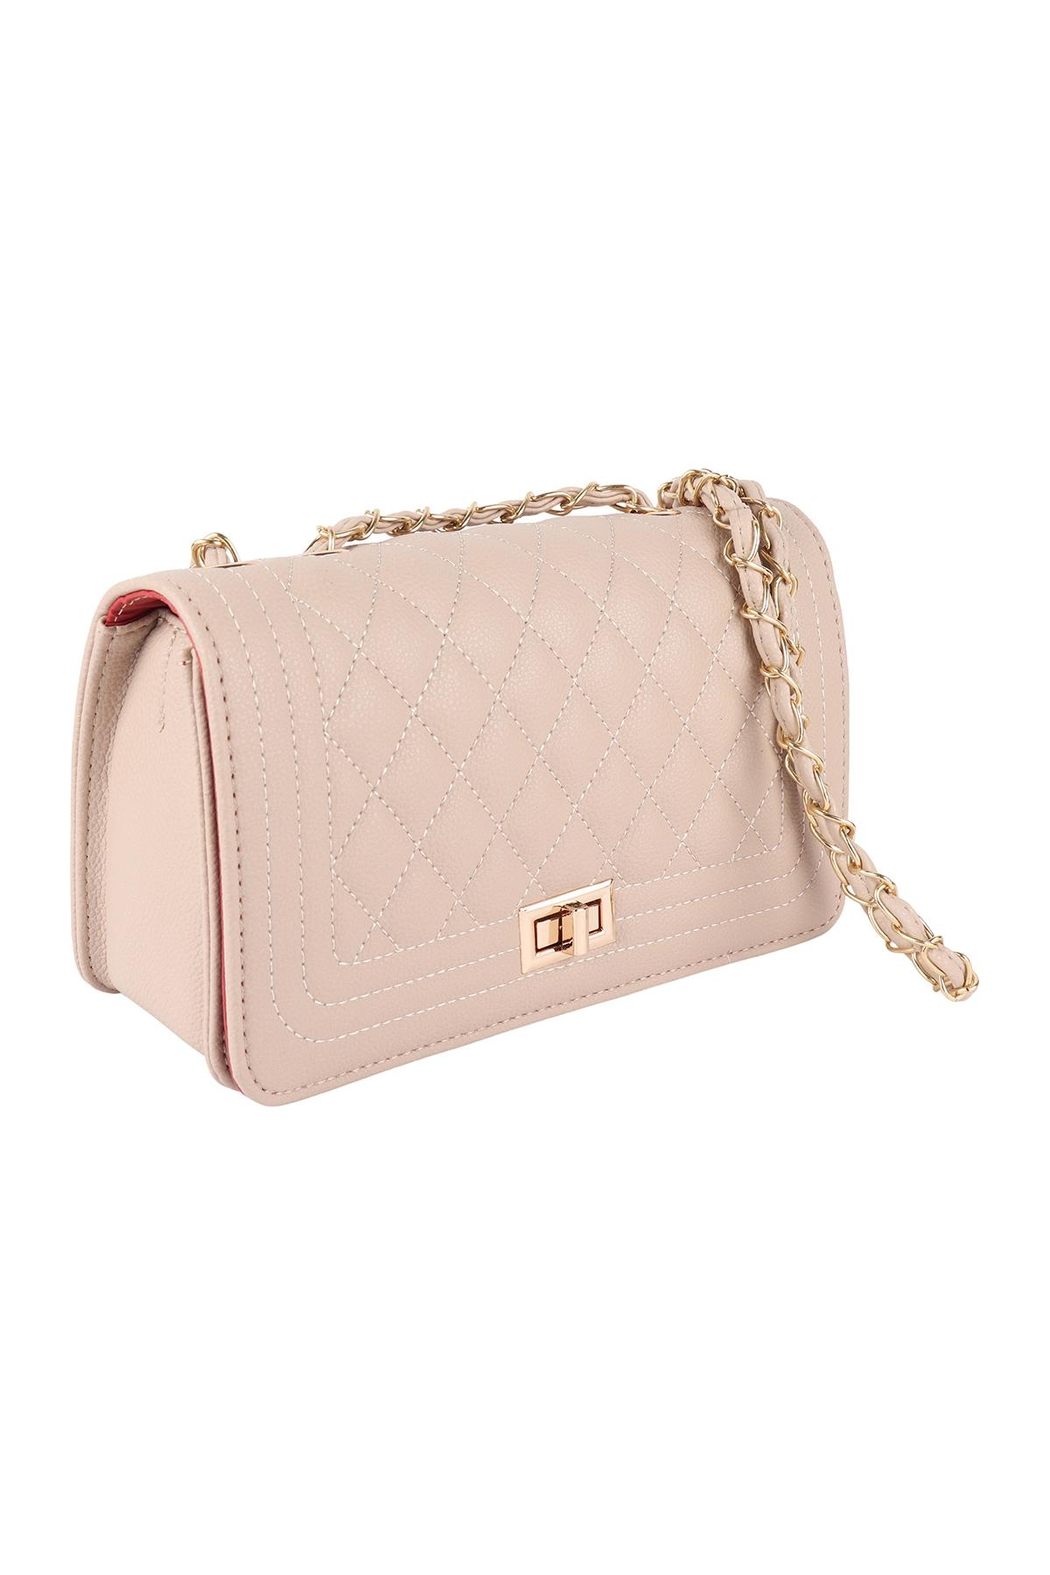 Riah Fashion Quilted-Diamond-Pattern-Fashion-Sling-Bag - Front Full Image